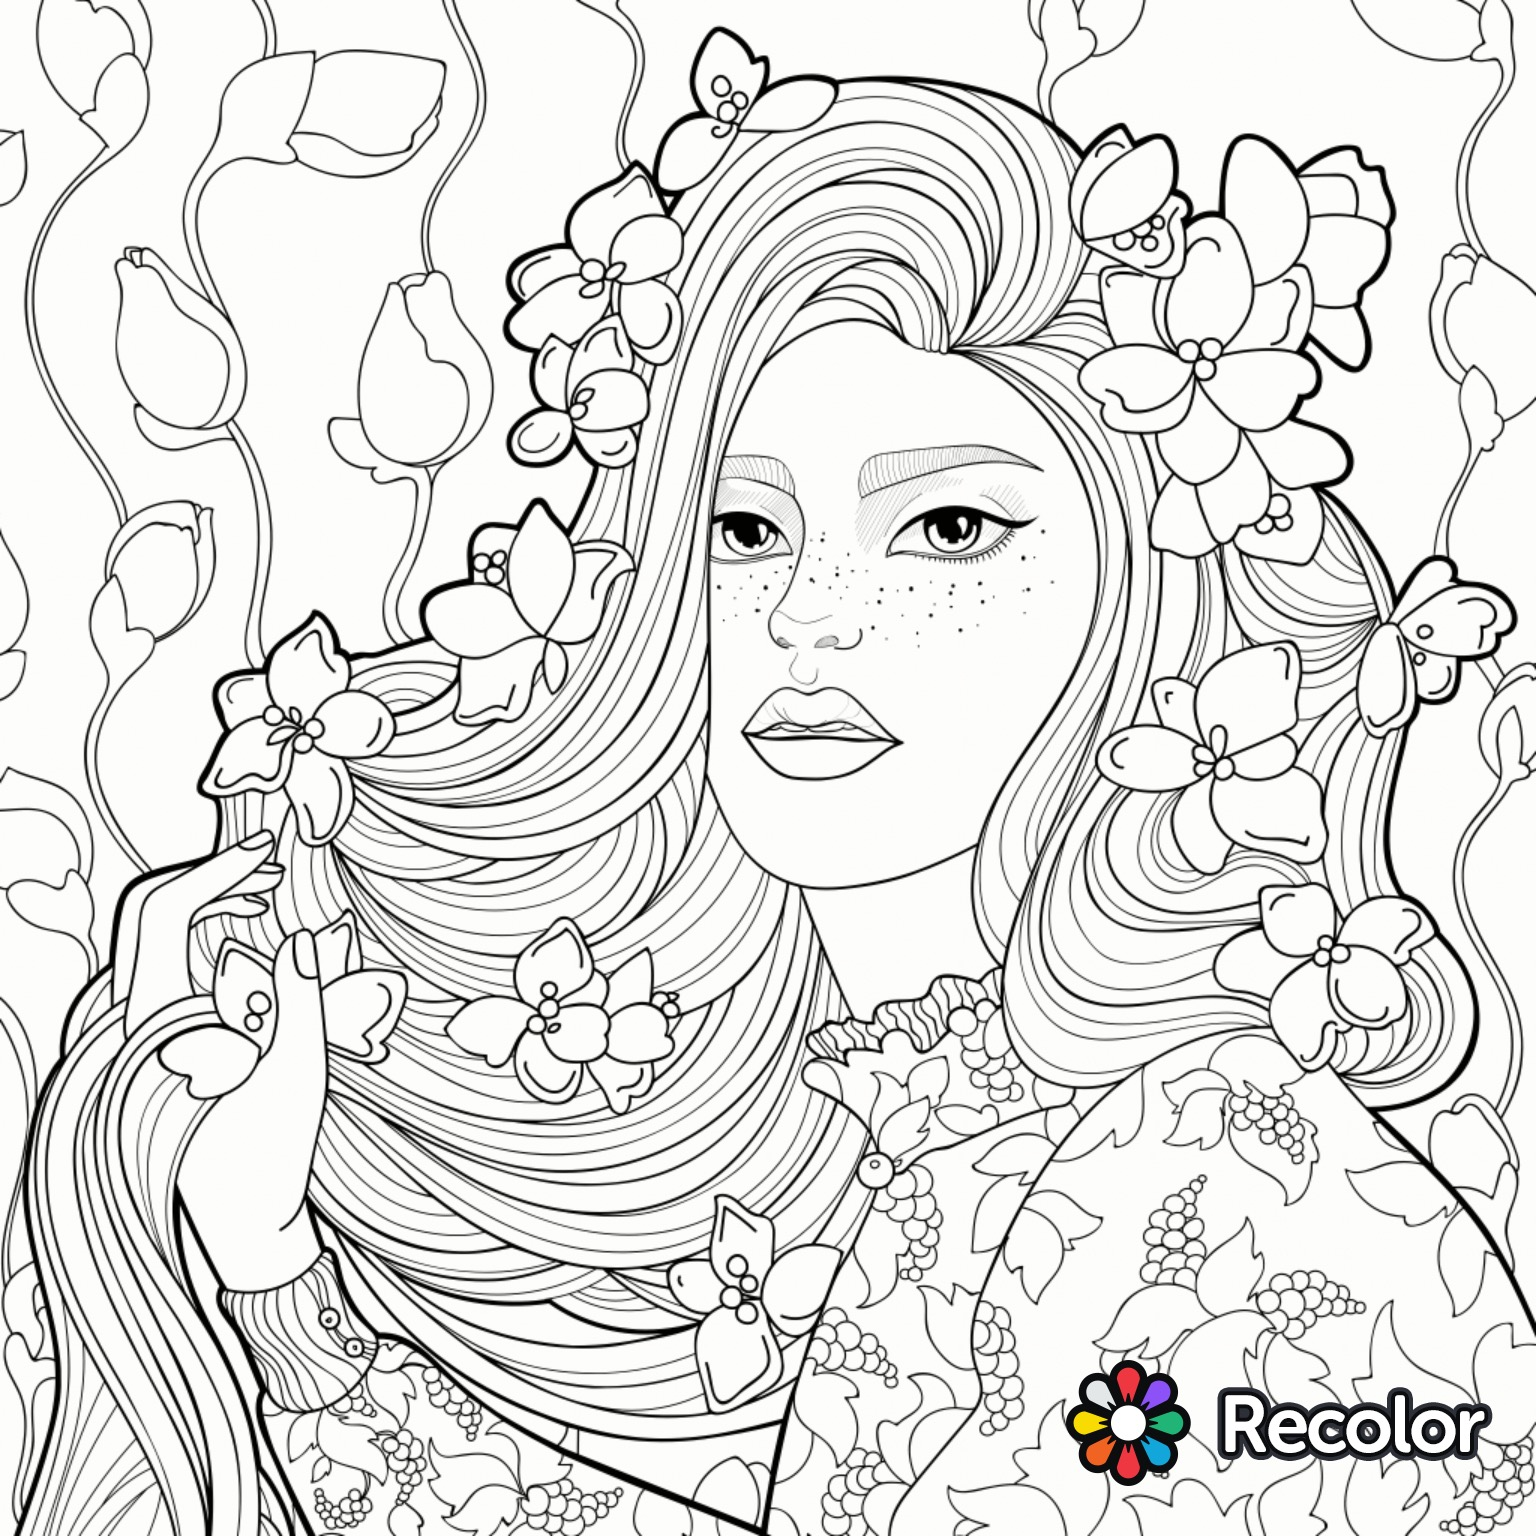 Free Adult Coloring Pages Png Transparent Images - PikPng | 1536x1536